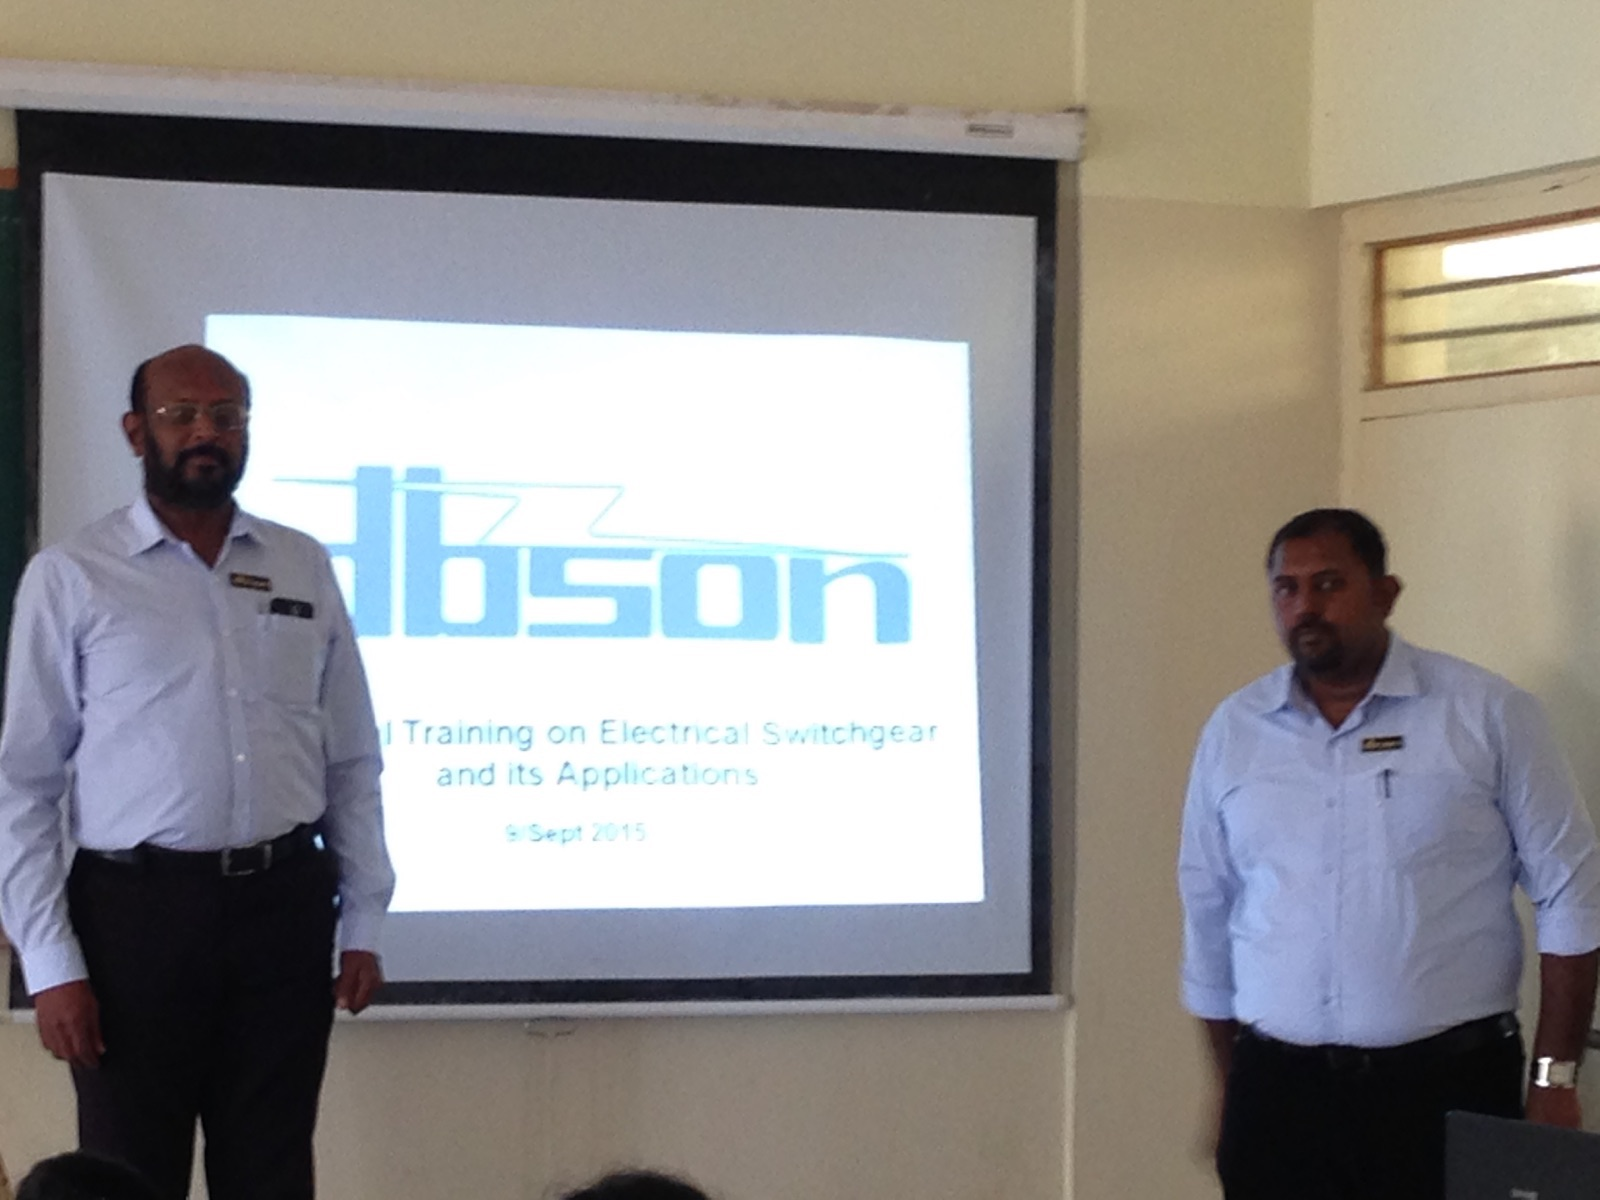 Practical training on Electrical Switch gear and its Applications